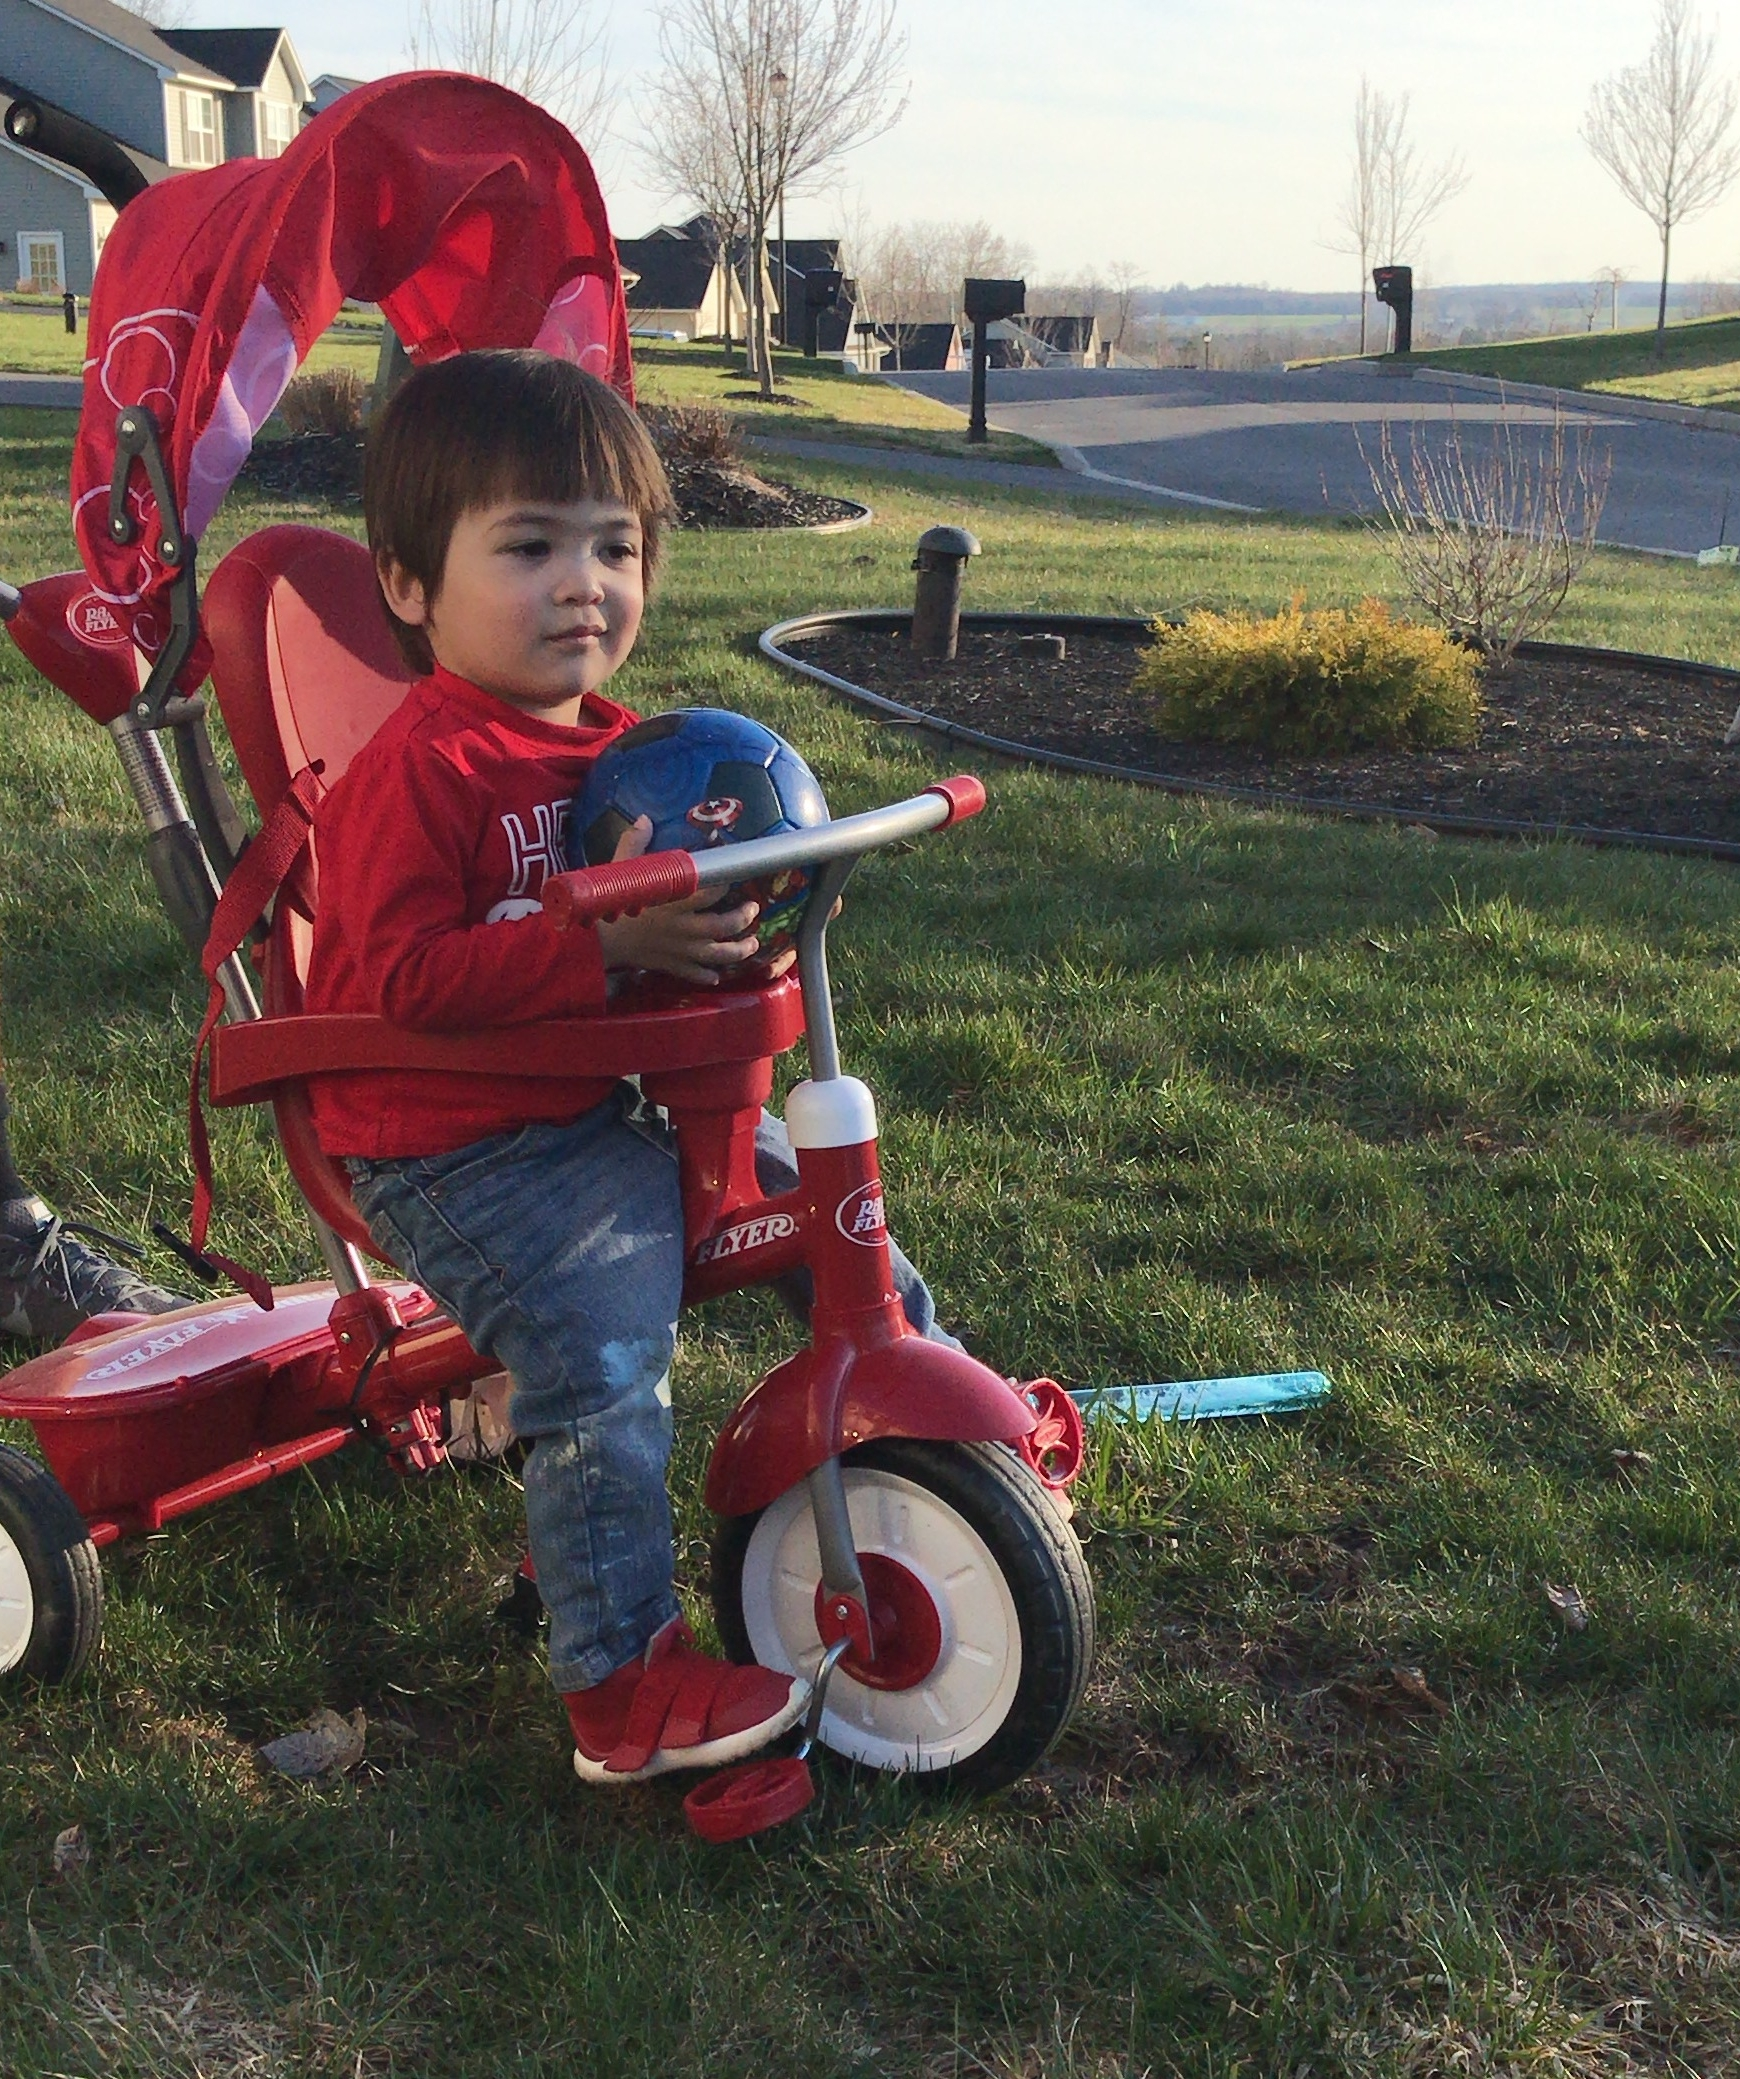 Pictured: Not kid who suffered trauma written about in article.  Just our 1 year old son in his tricycle.